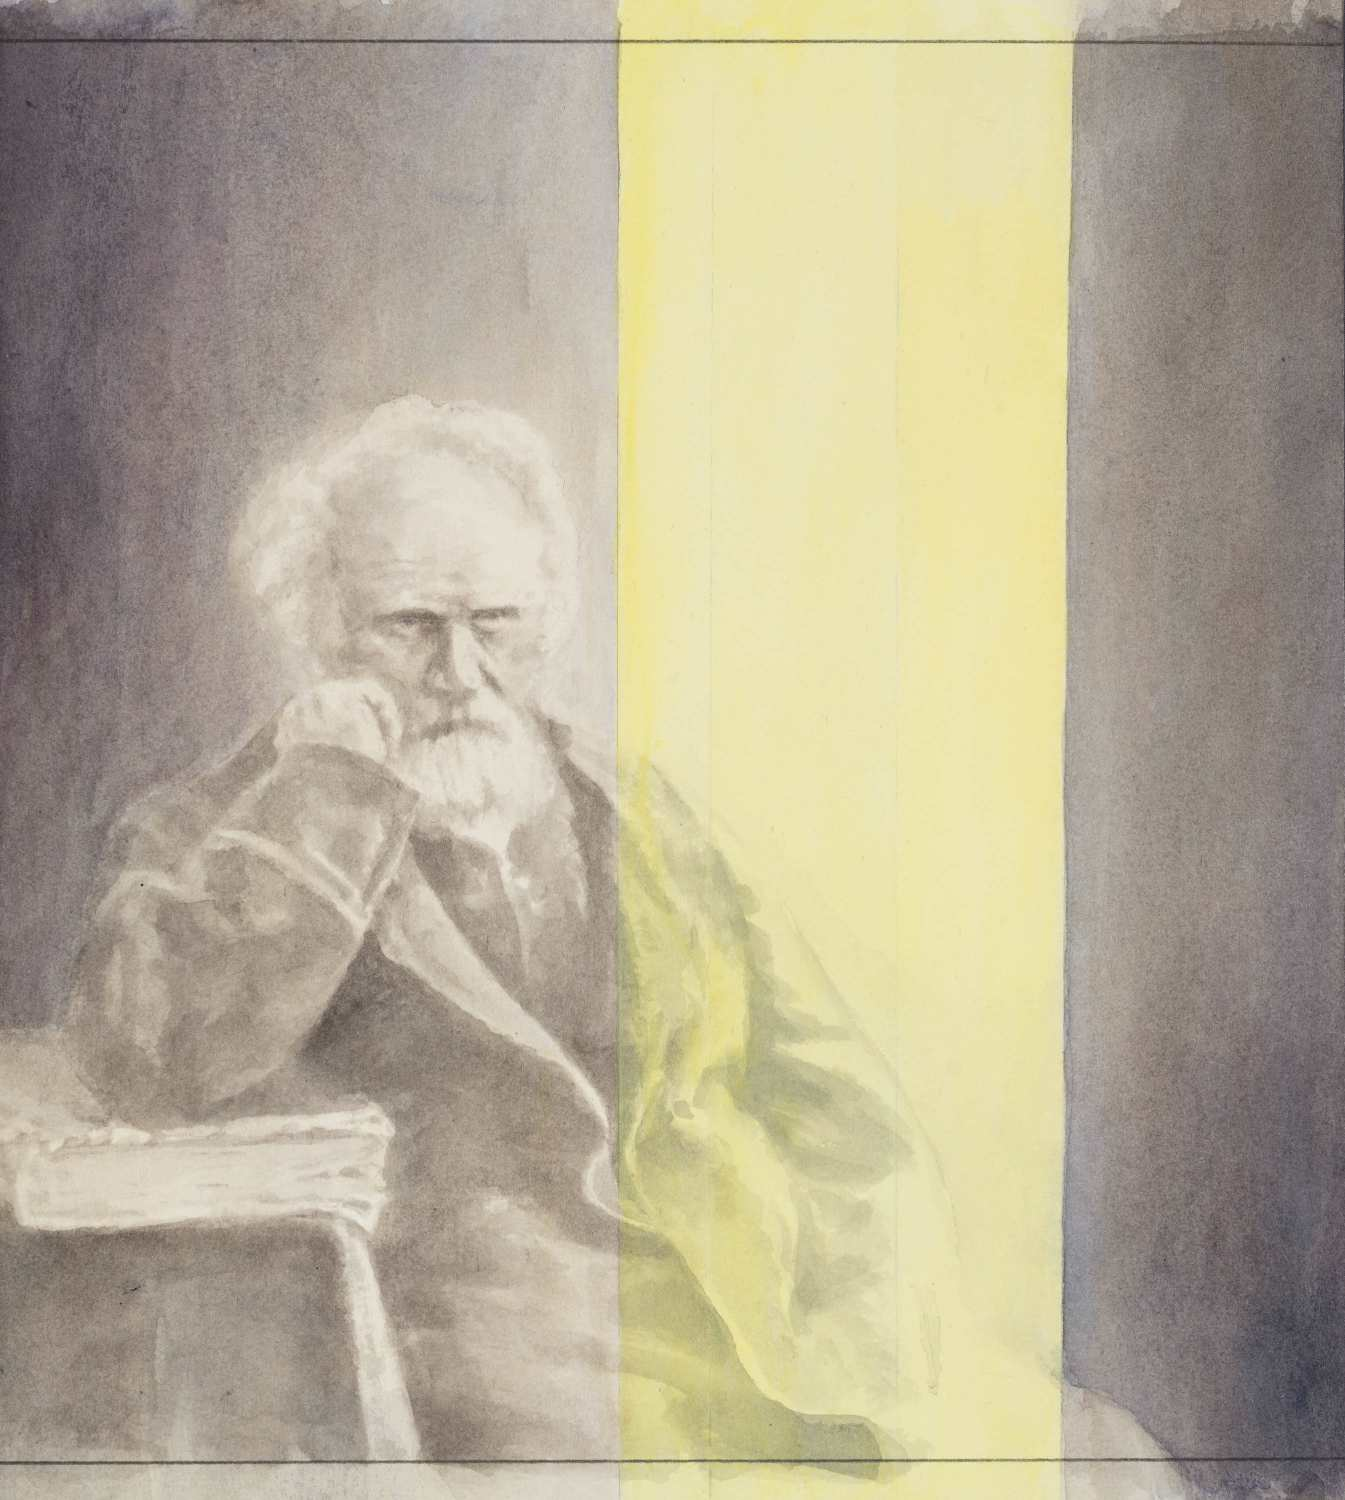 Jules Janssen Contemplating Bright Yellow Light, 2016, watercolour and acrylic on paper, 32,5 x 29,2 cm